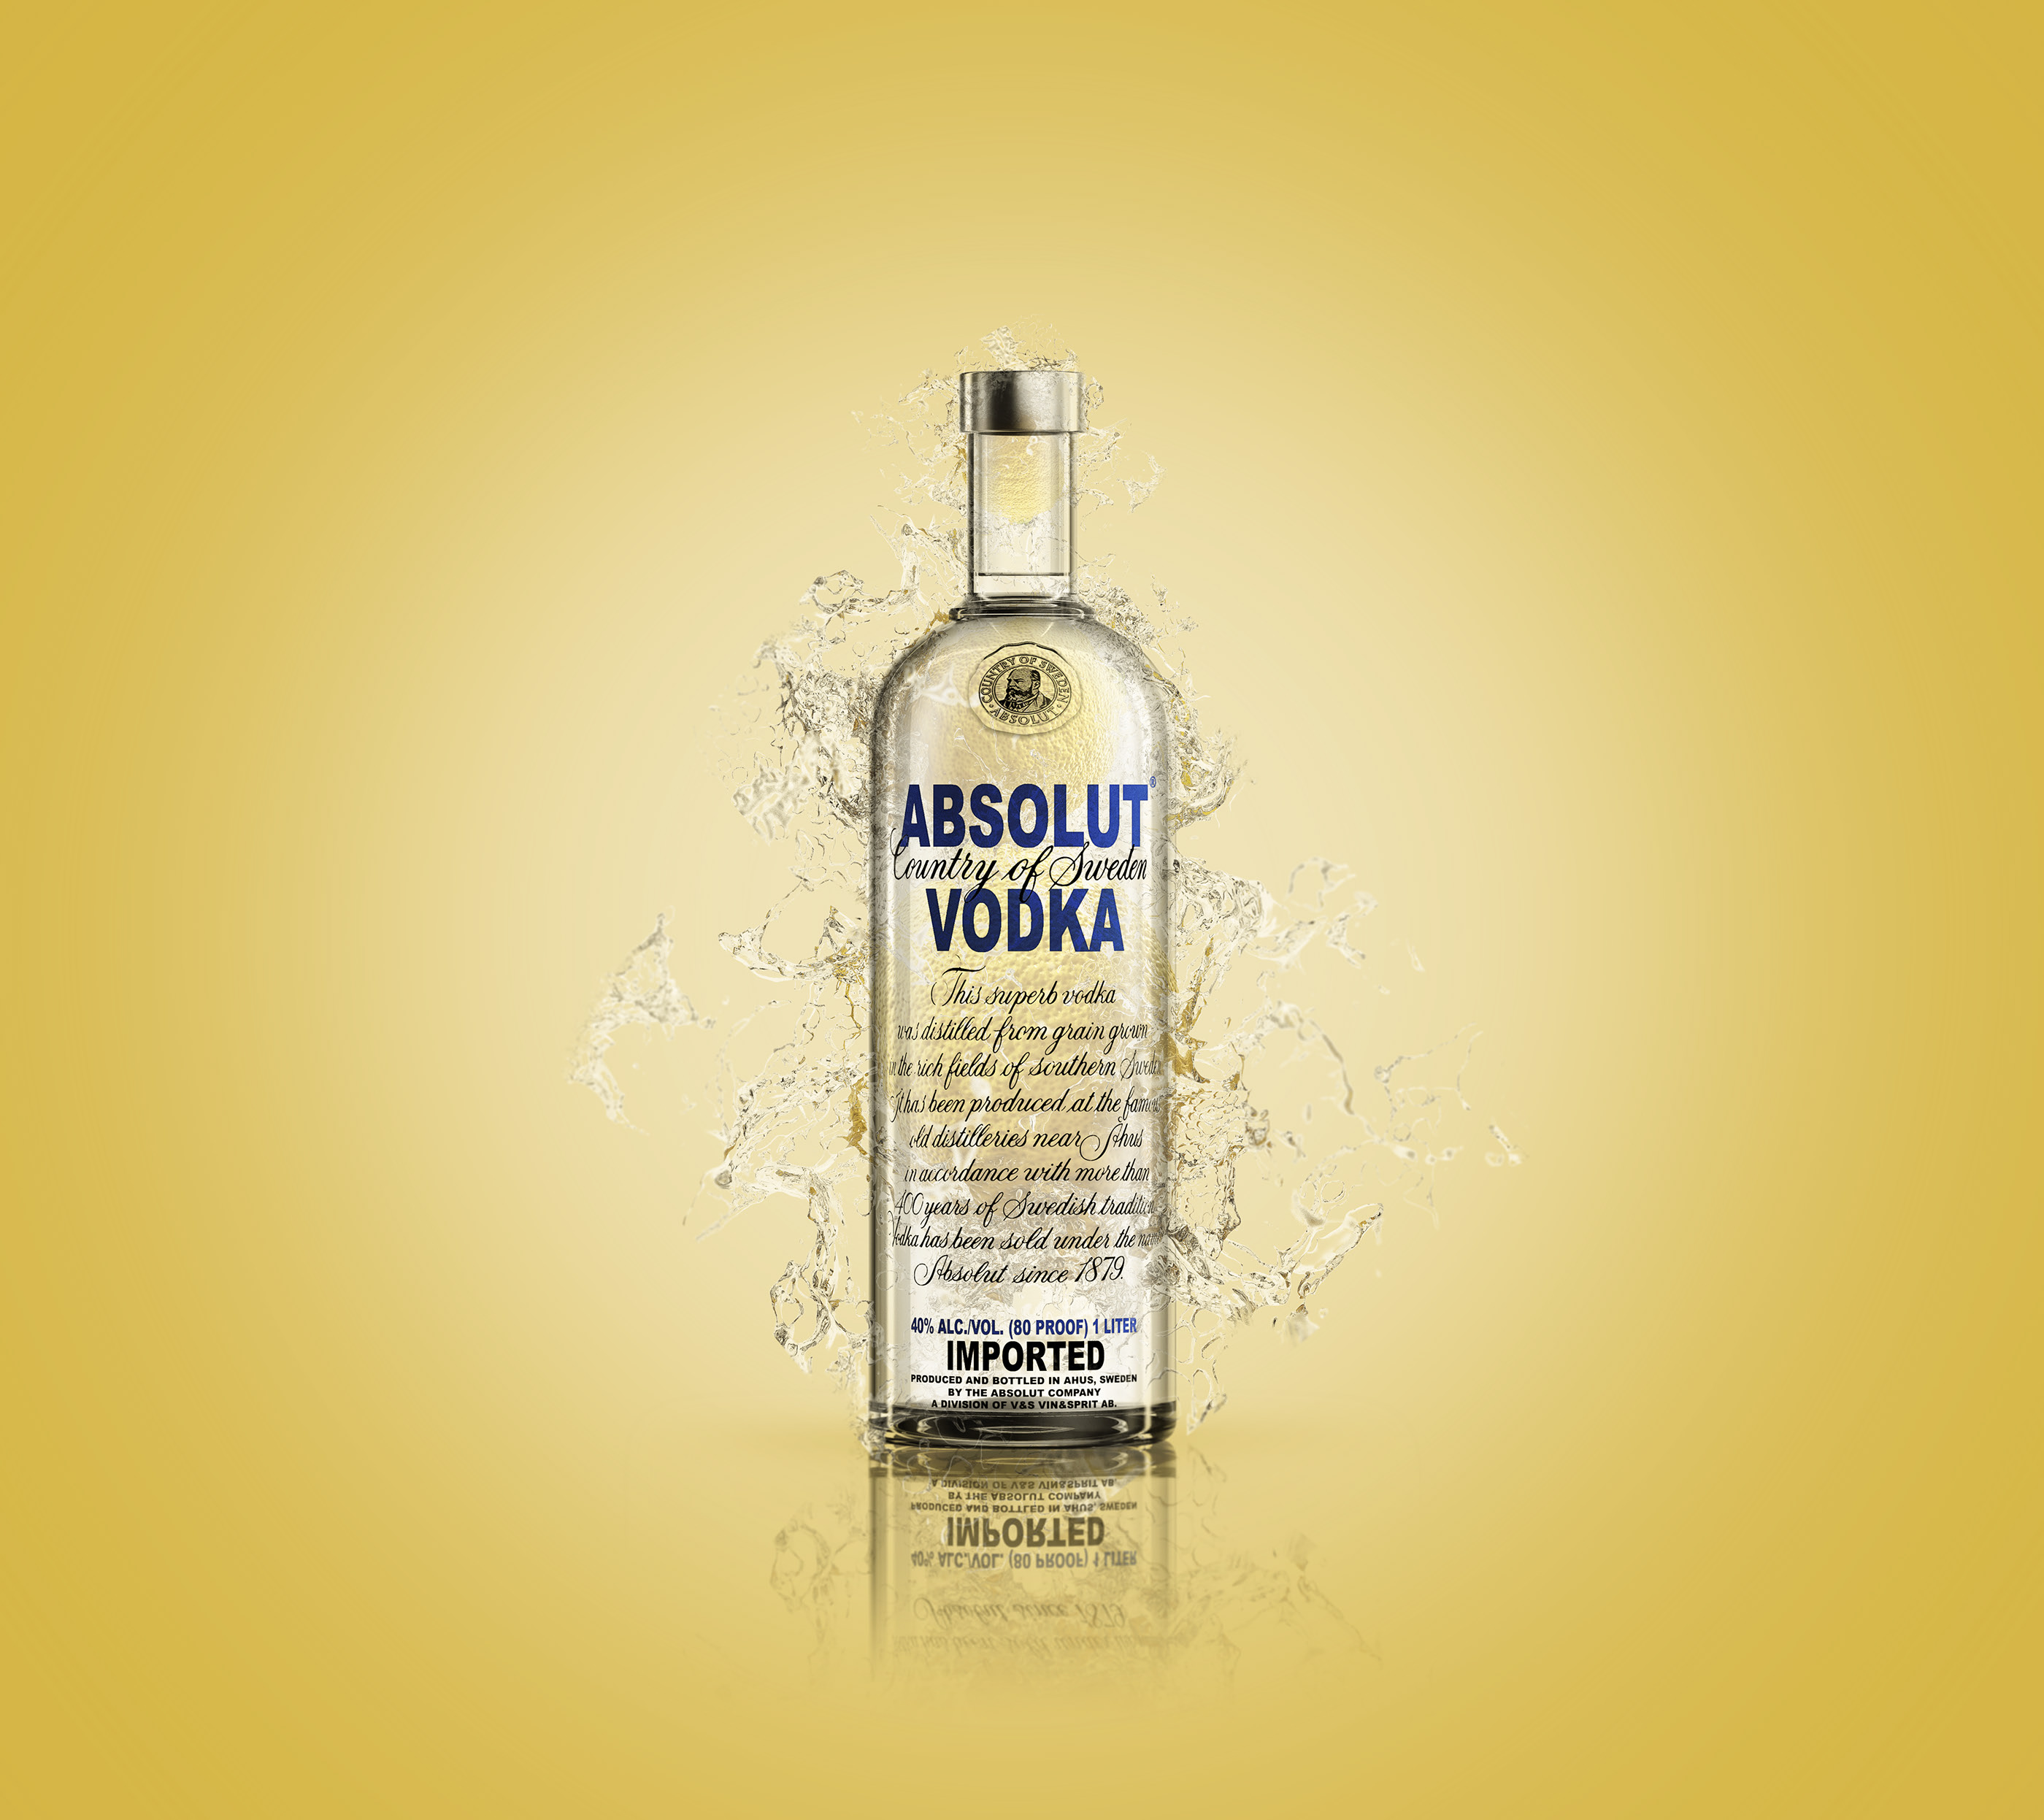 Absolut vodka - 3d model on Behance